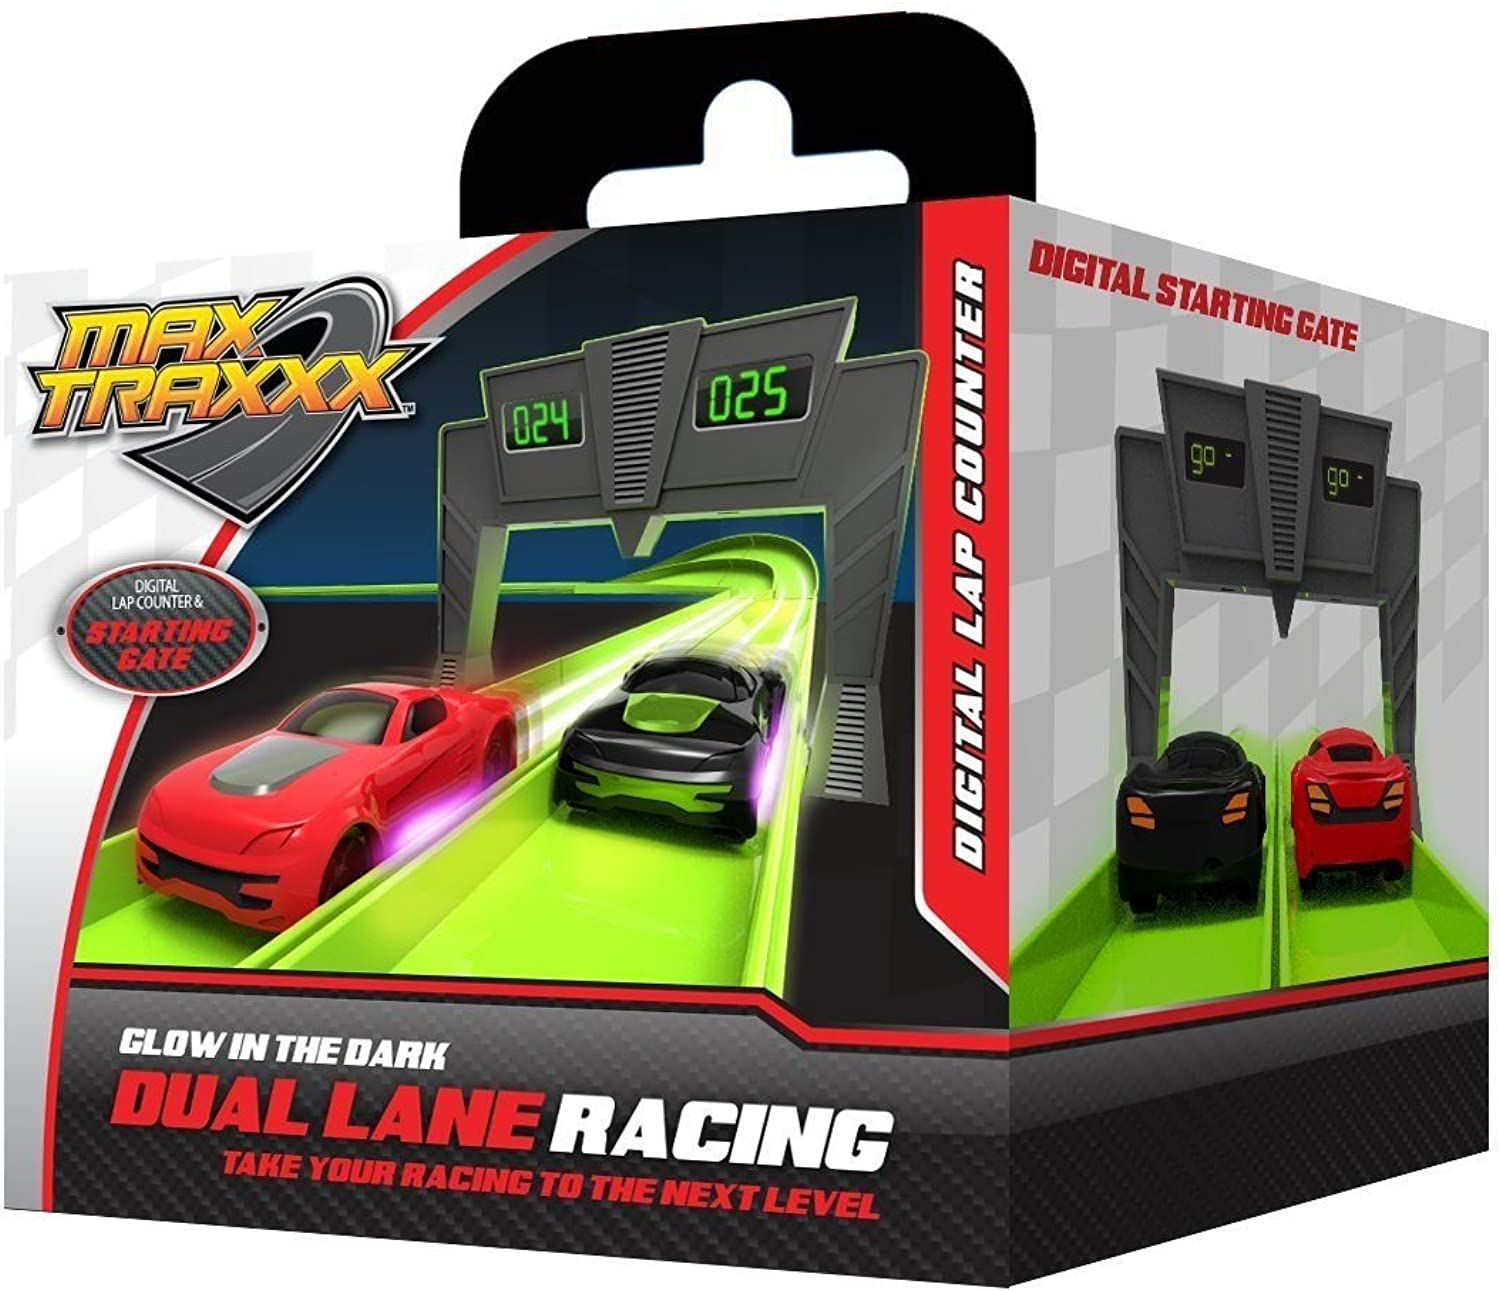 Max Traxxx R C Tracer Racers High Speed Remote Control Race Track Digital Lap Counter